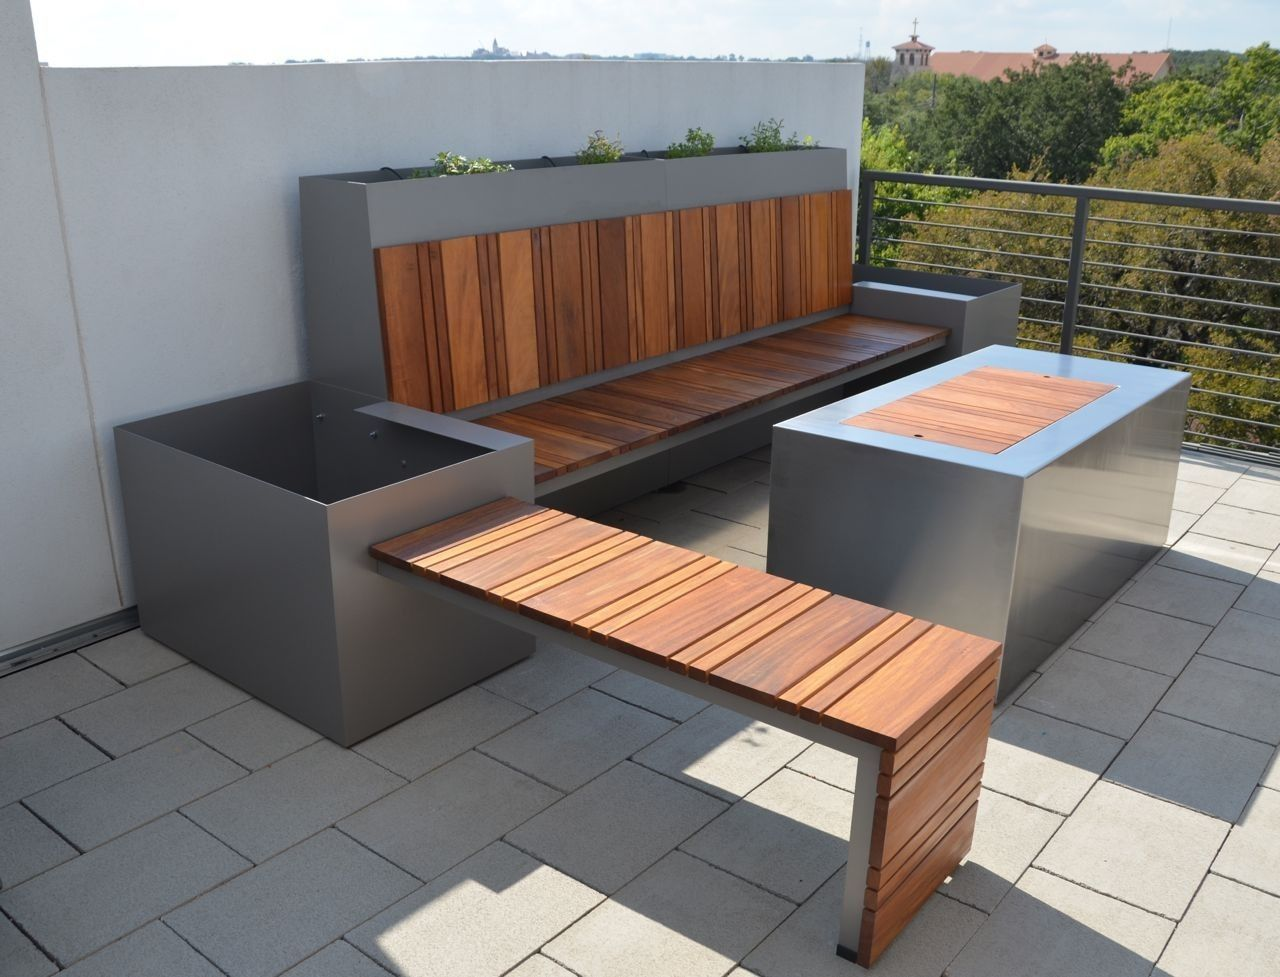 custom dining chair covers australia fold up rocking lawn handmade outdoor seating area and fire pit by sarabi studio made